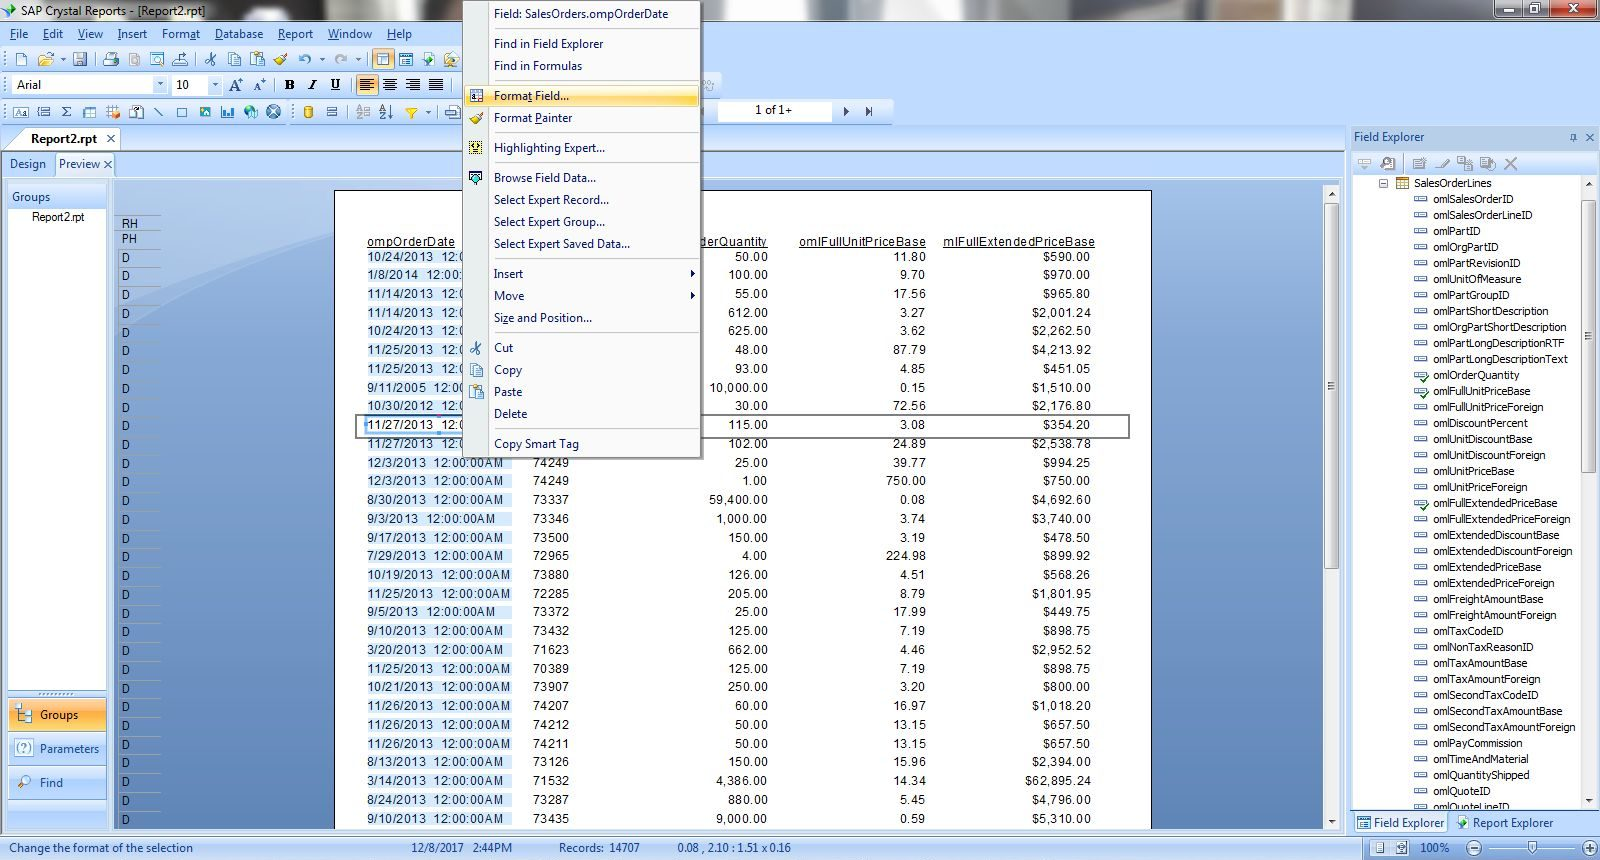 cagr crystal reports